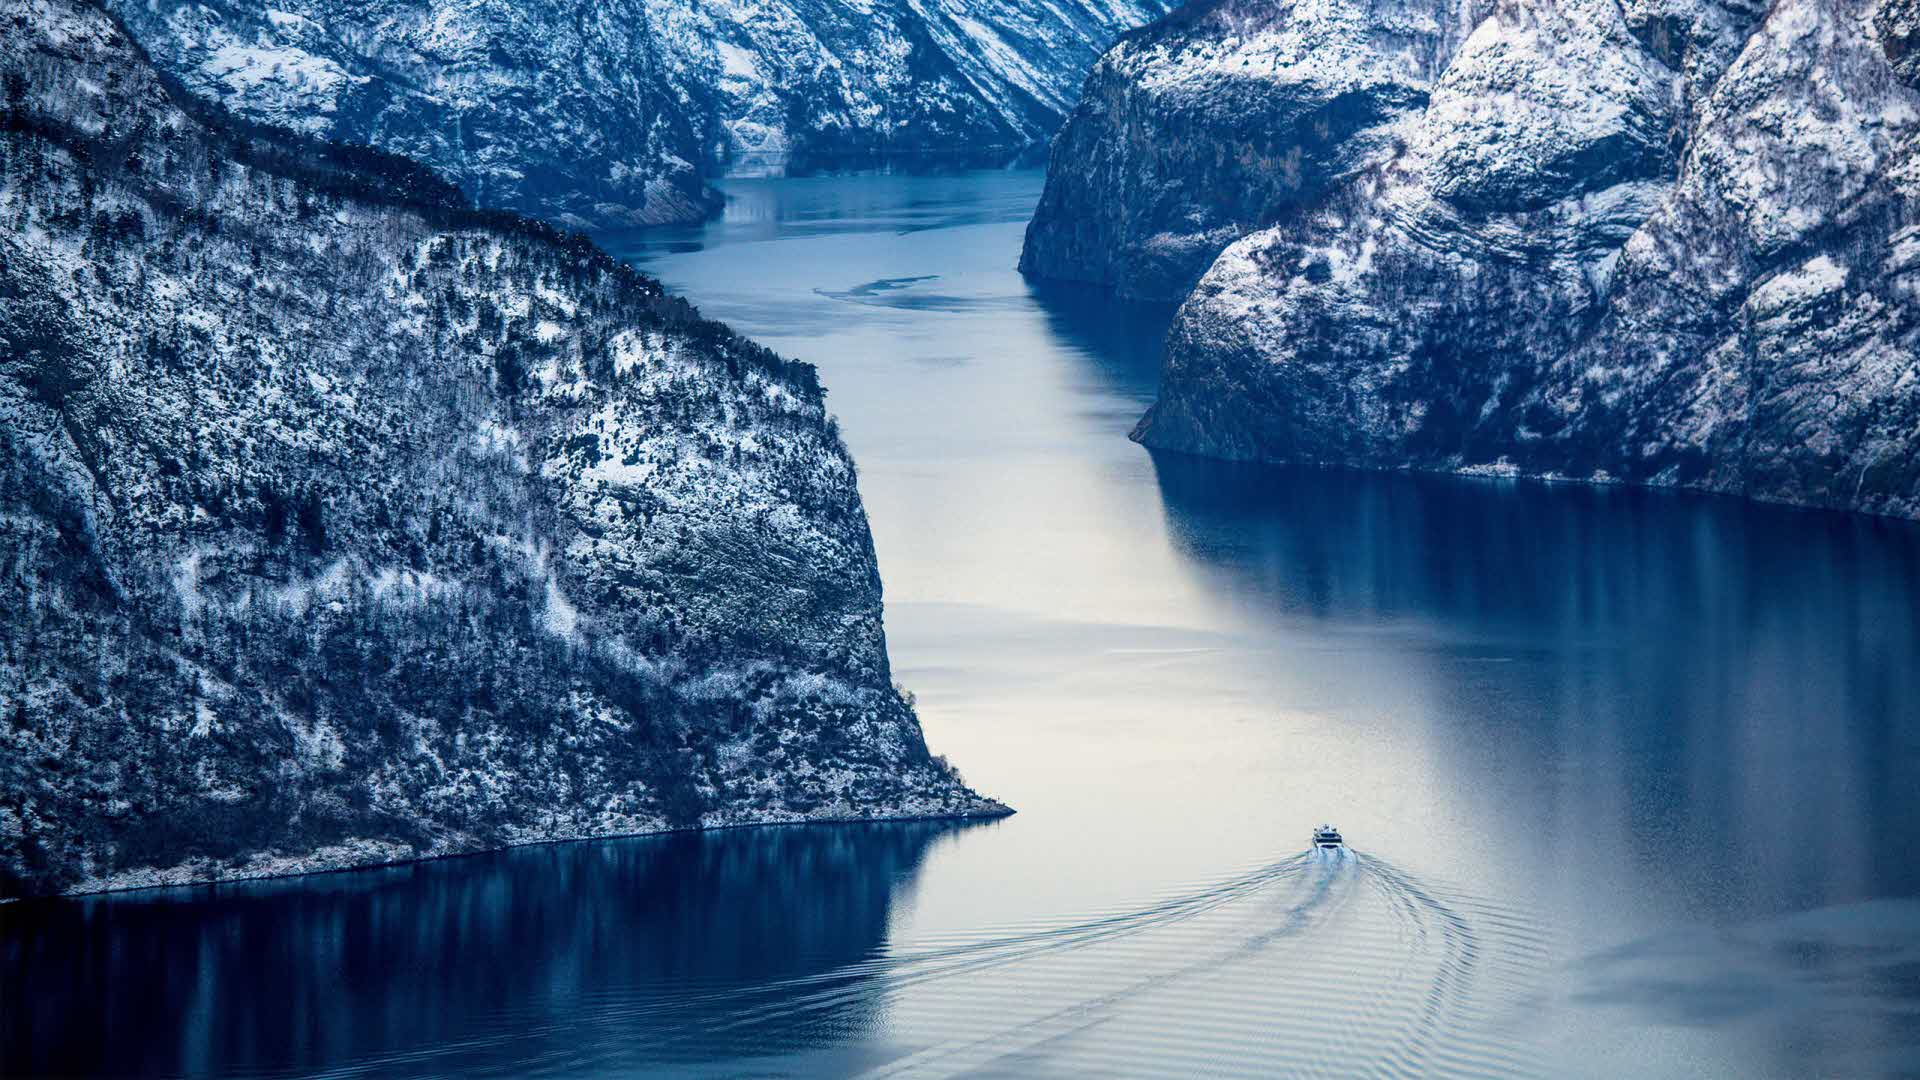 The Winter on the fjord